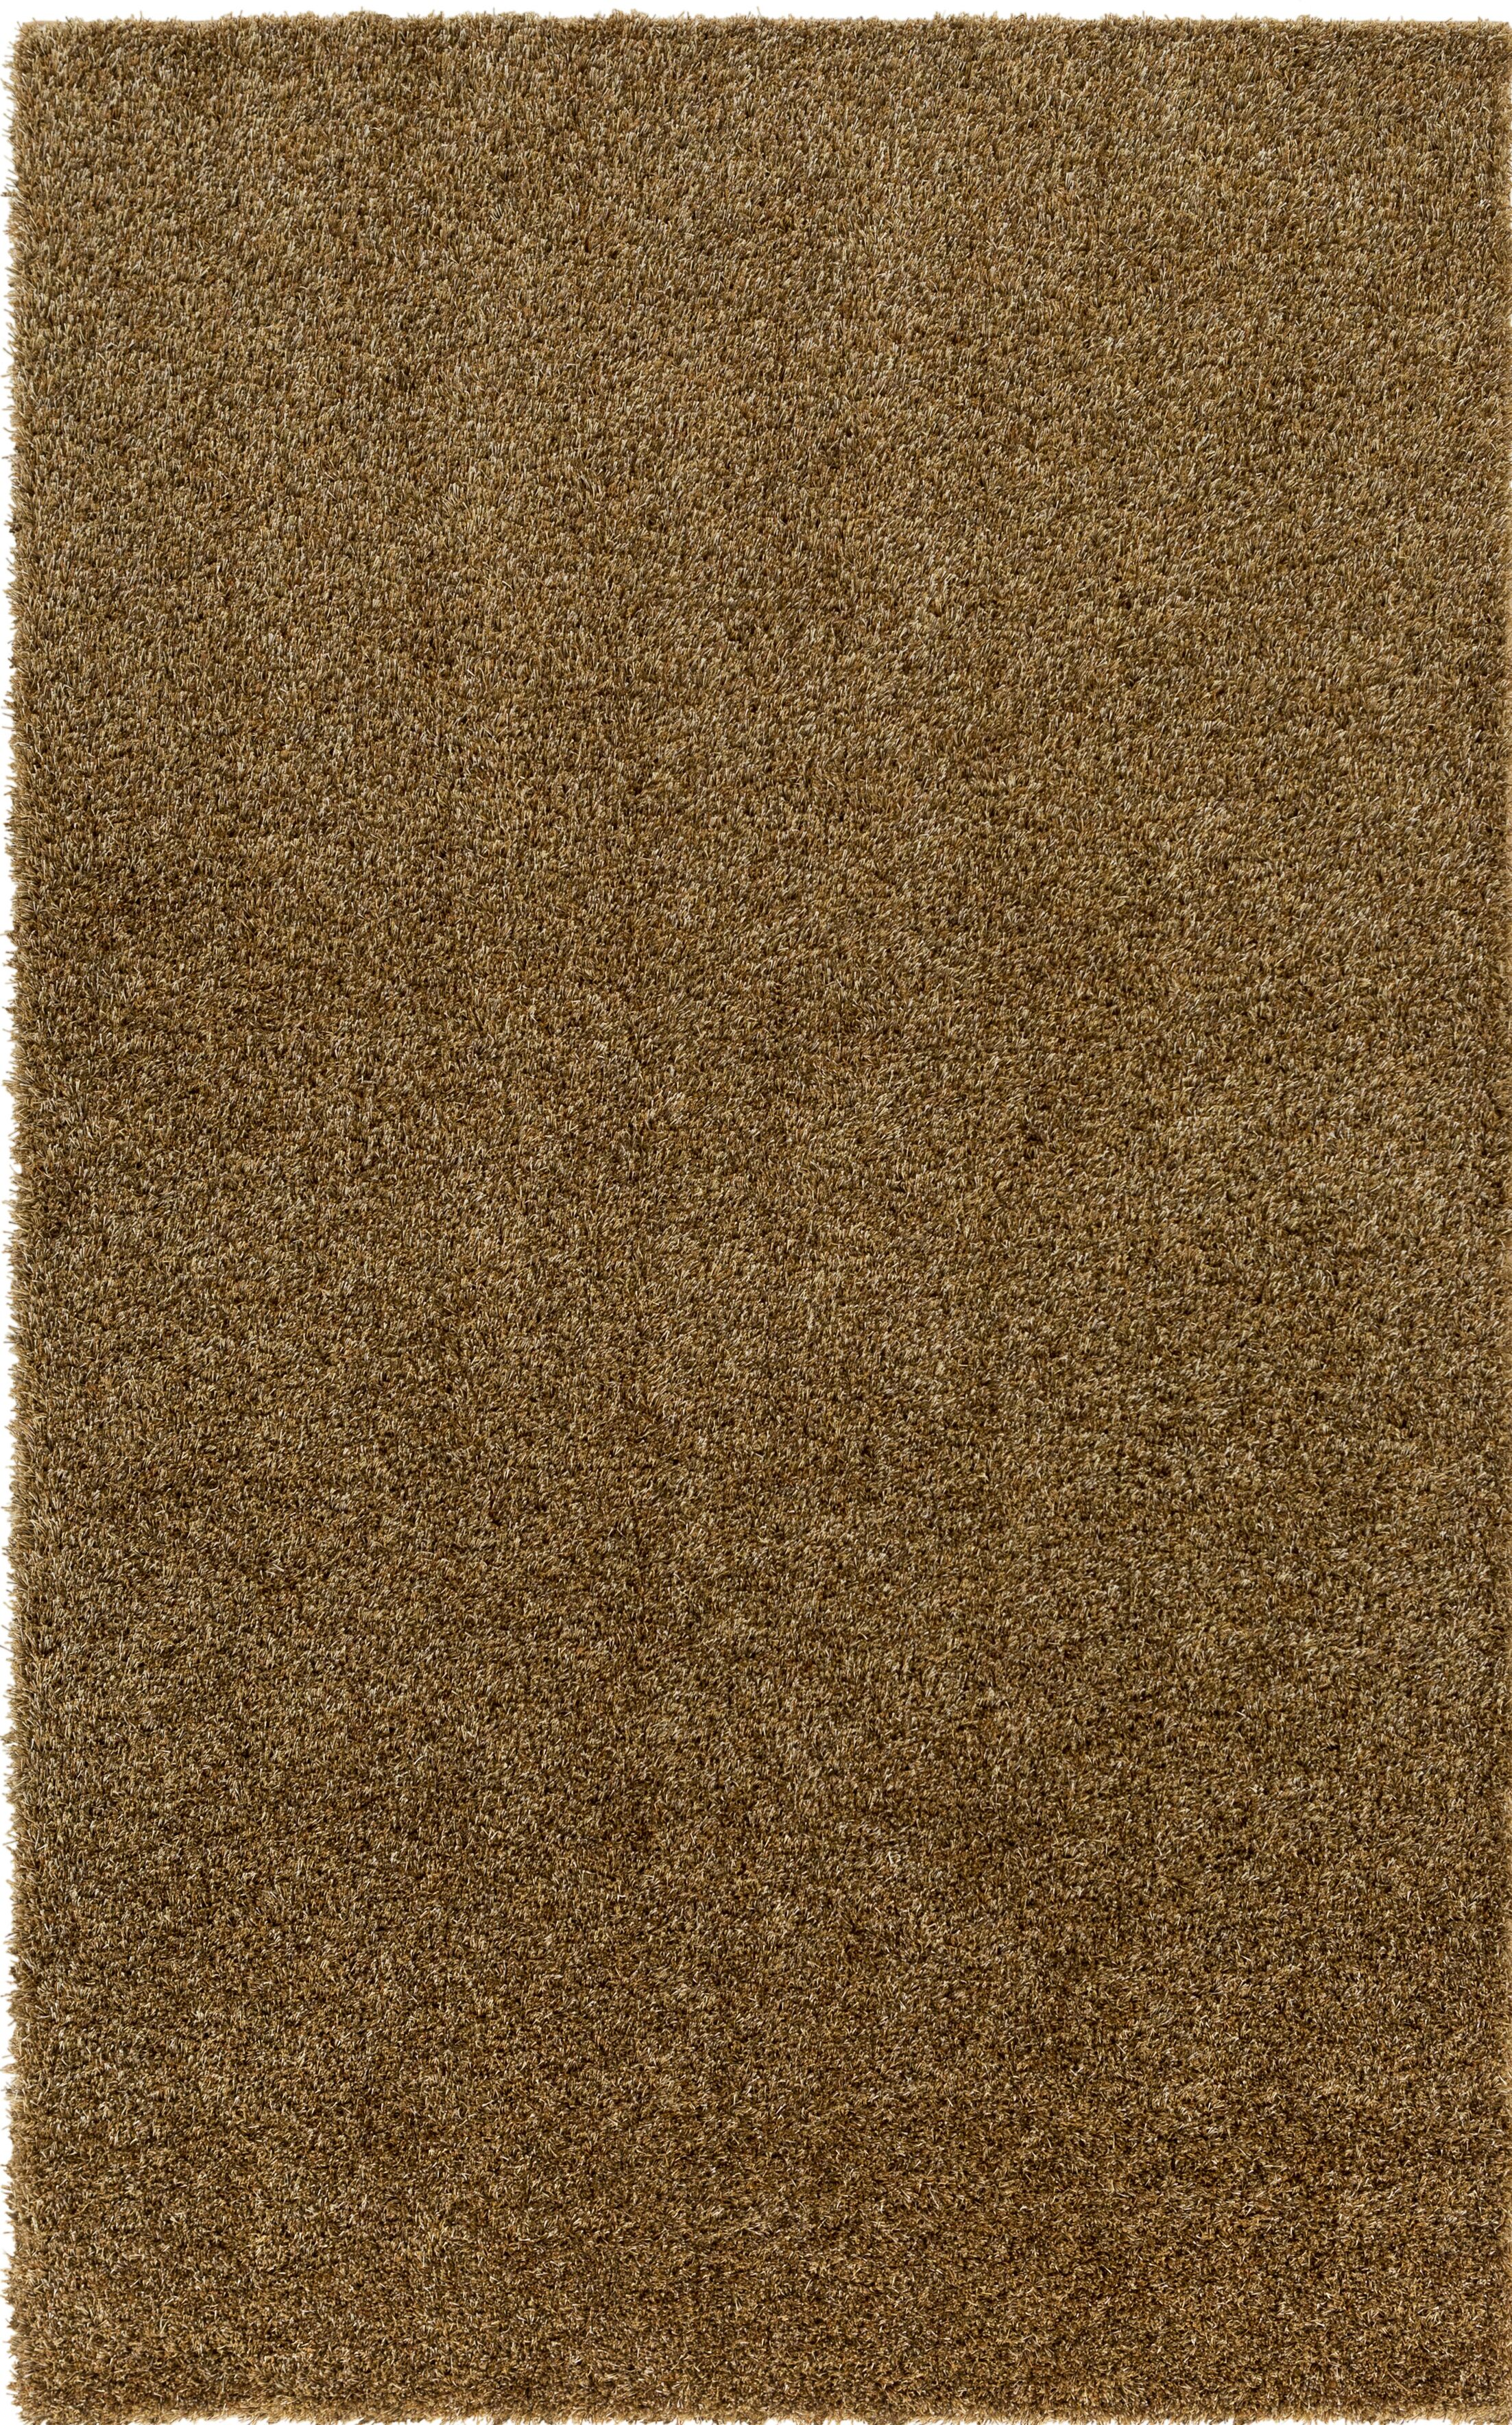 Dulcia Brown Area Rug Rug Size: Round 4'